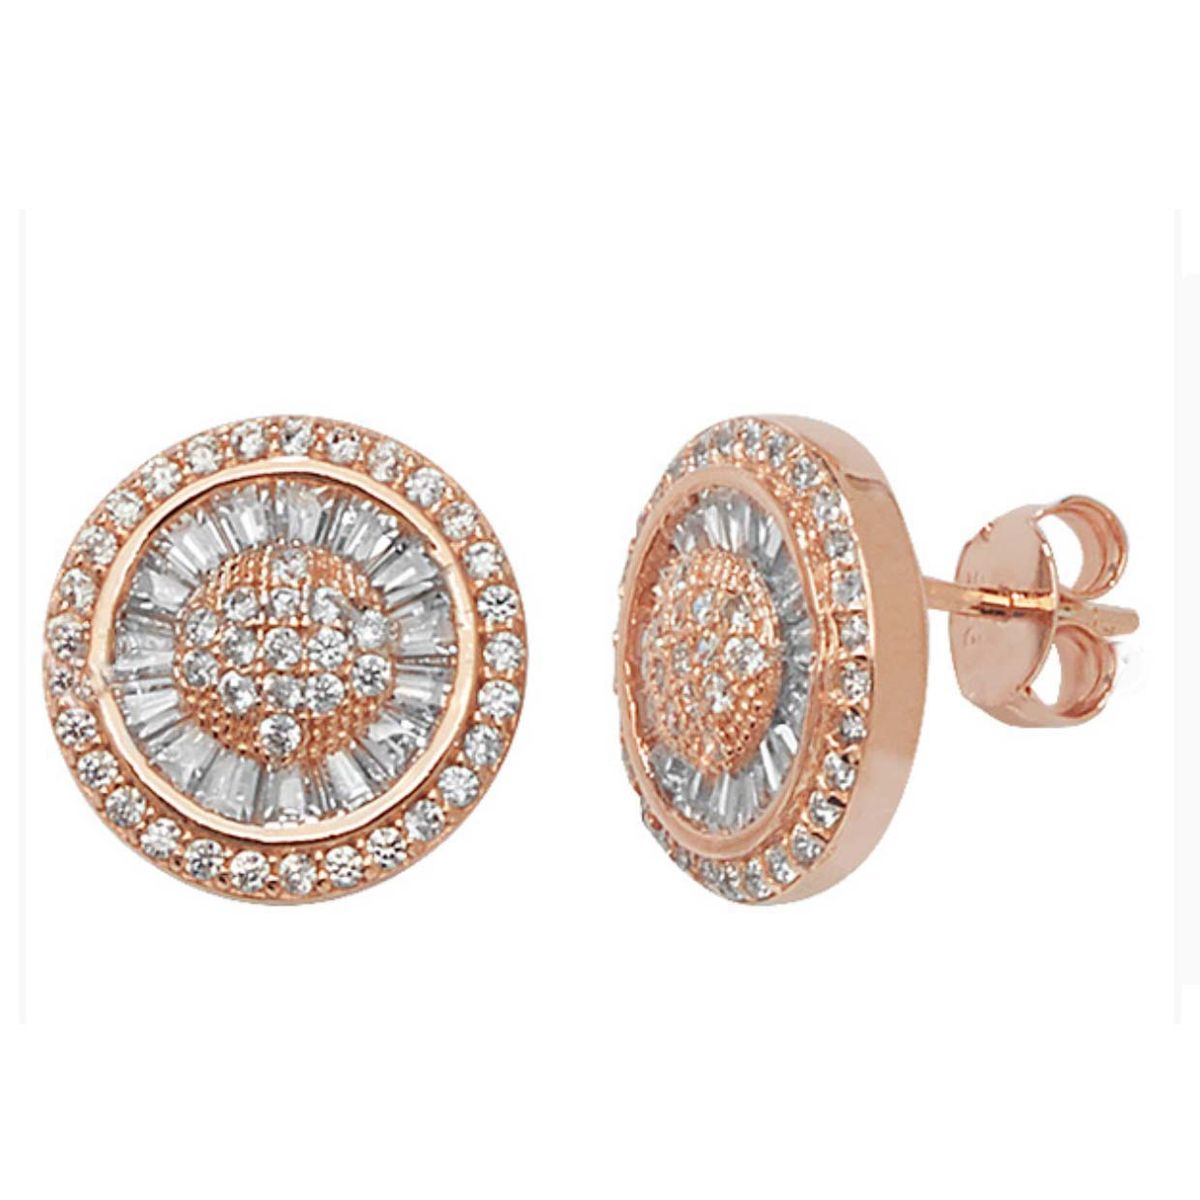 Sterling Silver (Rose Gold) Round Earrings - product images  of